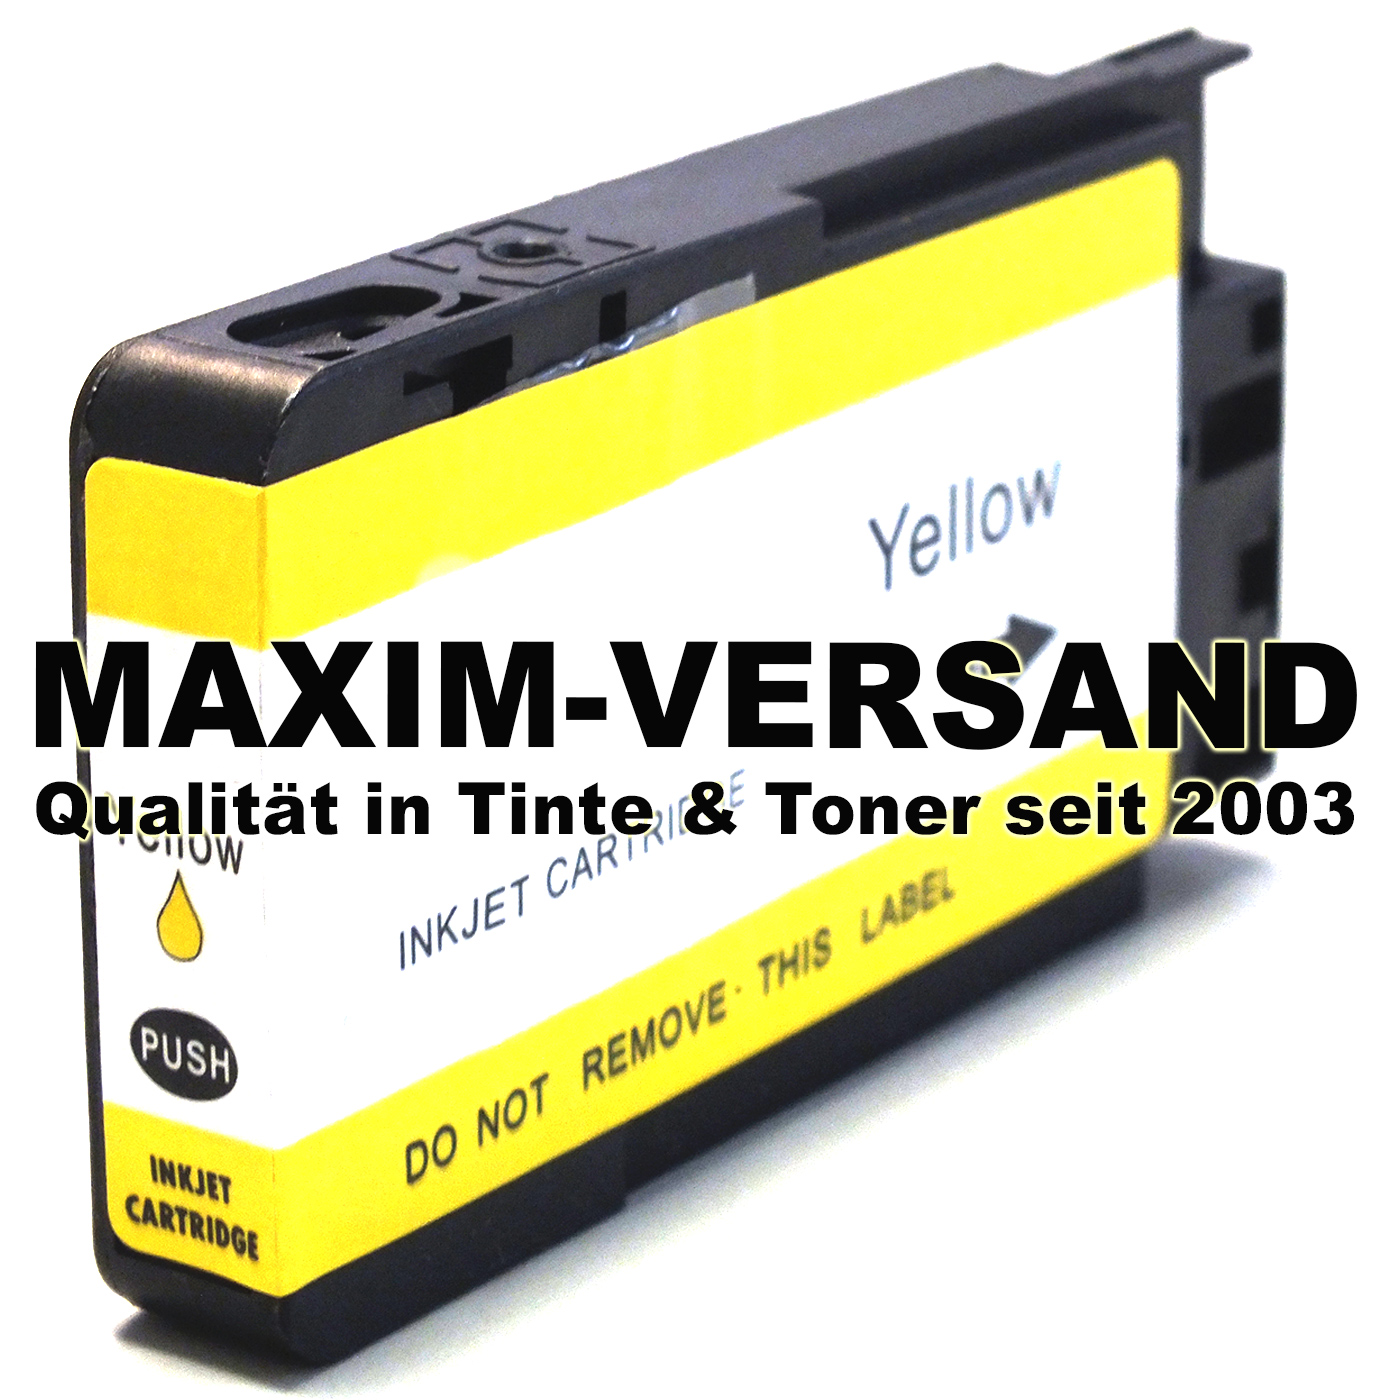 HP 711 XL - kompatibel - CZ132A - gelb / yellow - mit Chip